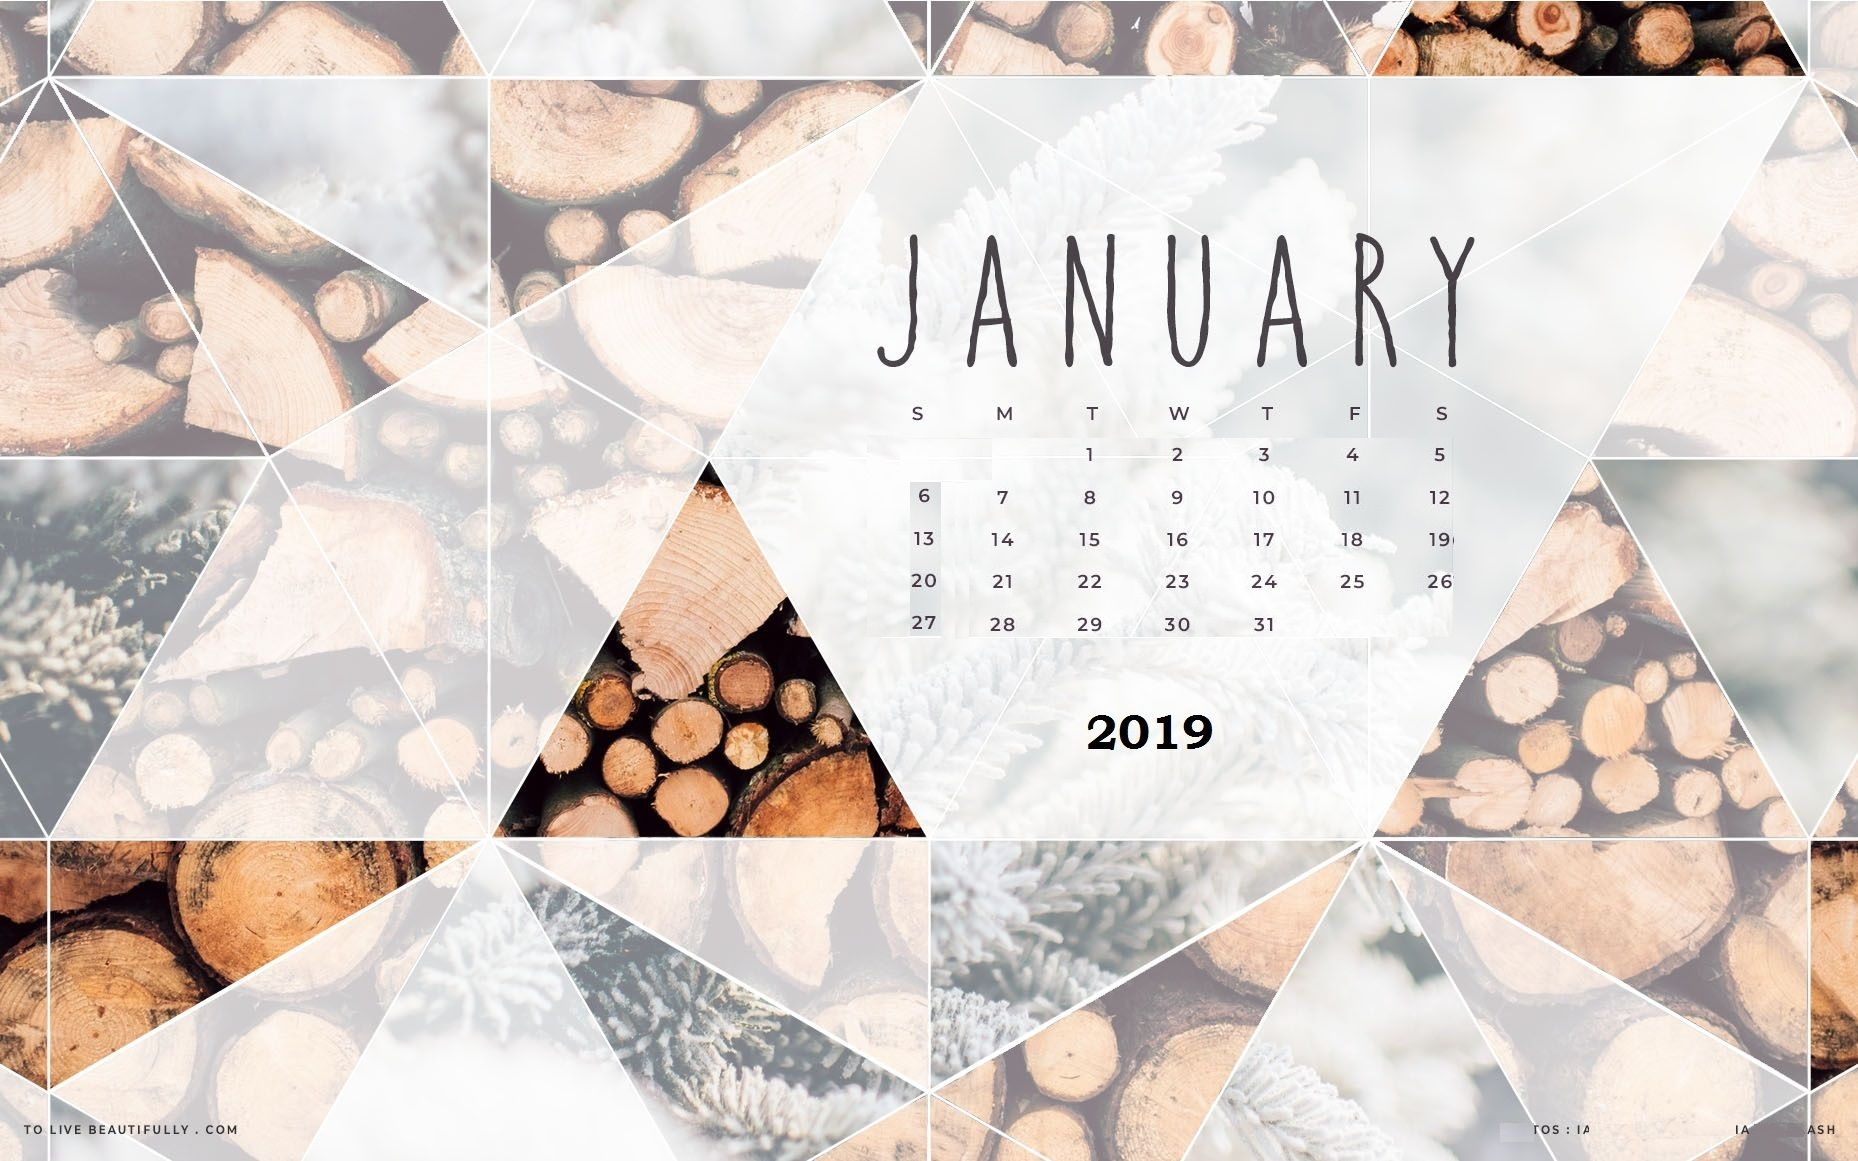 jan 2019 hd wallpaper with calendar monthly calendar templates in::January 2019 Desktop Calendar Wallpaper